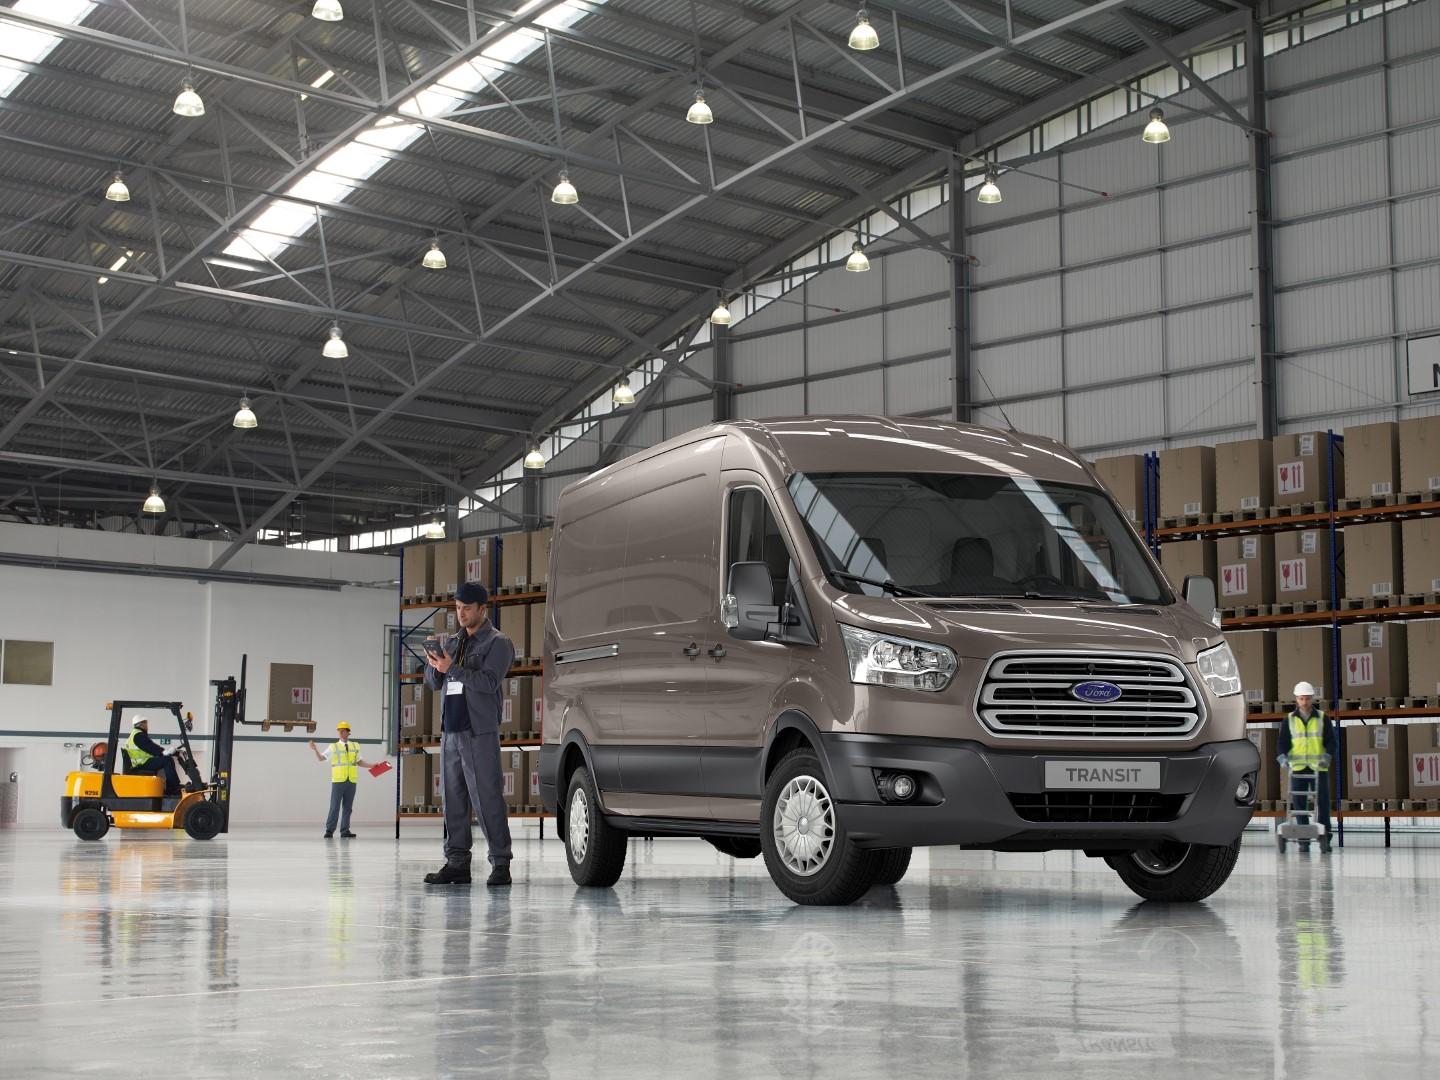 1516954623_ford_transit__3_-(1)-(large).jpg